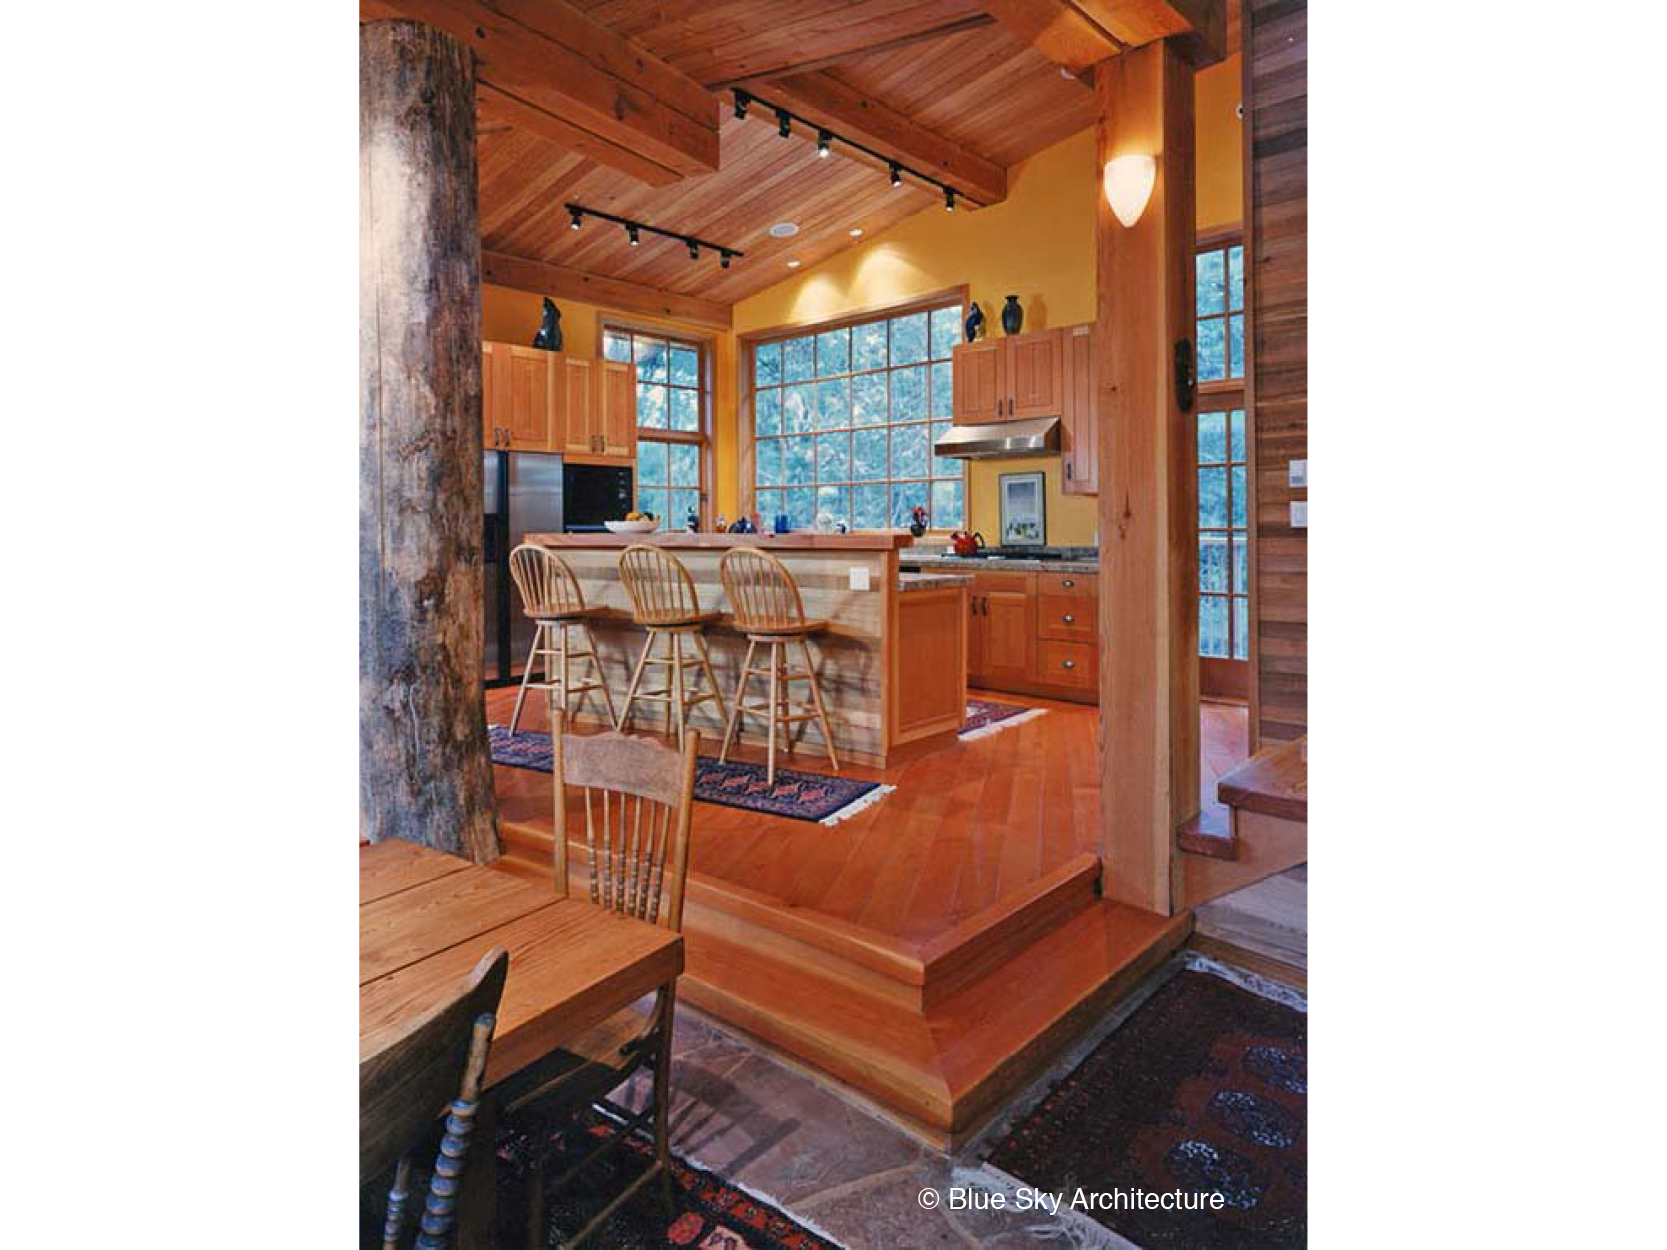 Kitchen Design with Wood Cabinetry and Floors